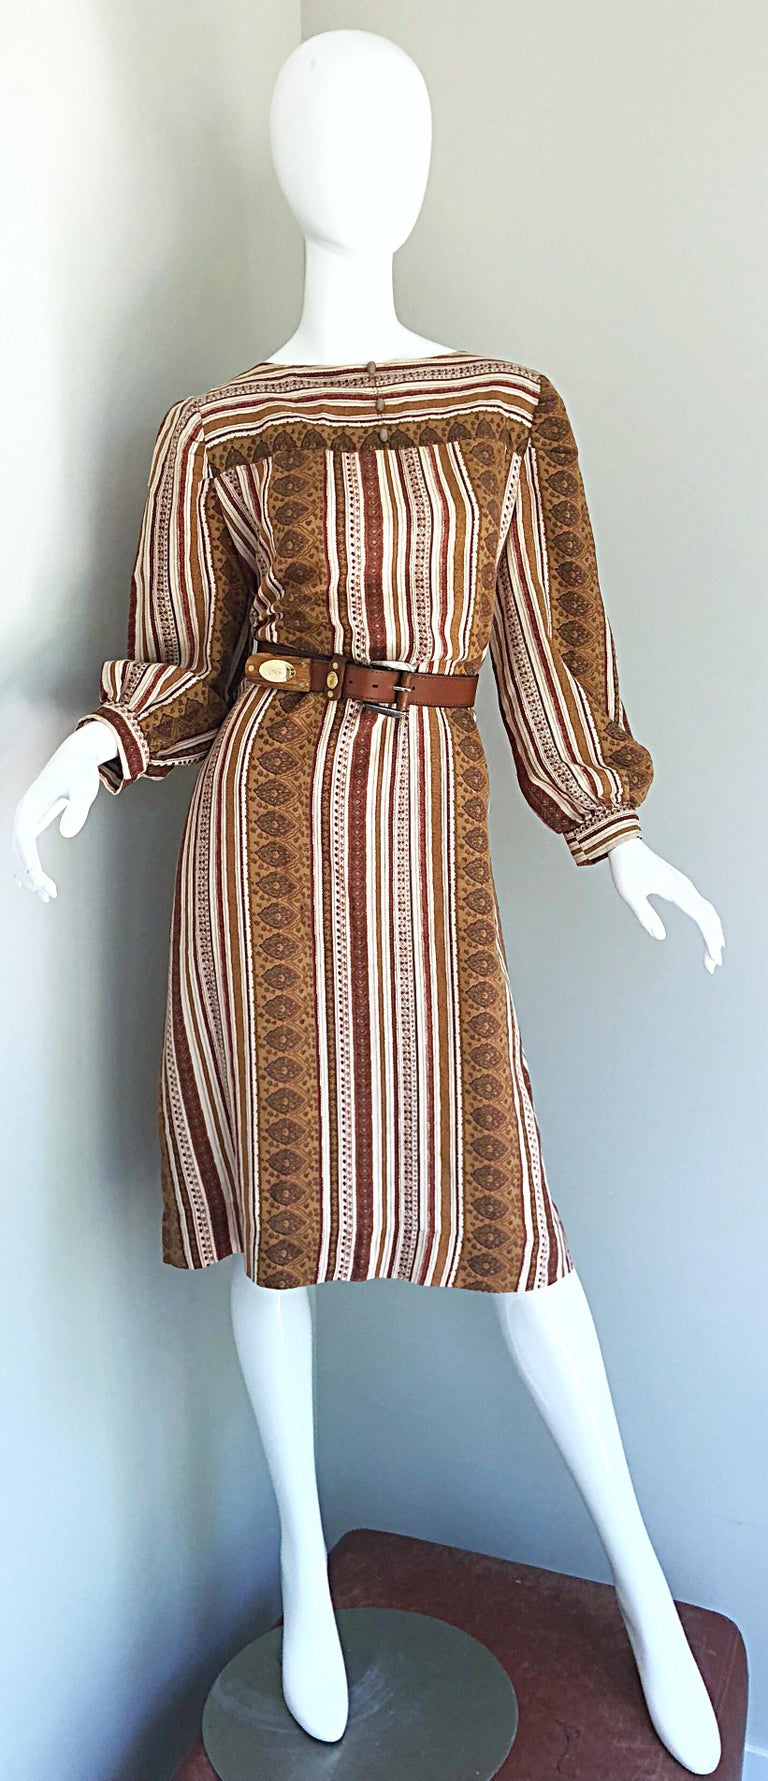 1970s Boho Chic Brown and Ivory Soft Cotton Paisley Print Vintage 70s Dress For Sale 6